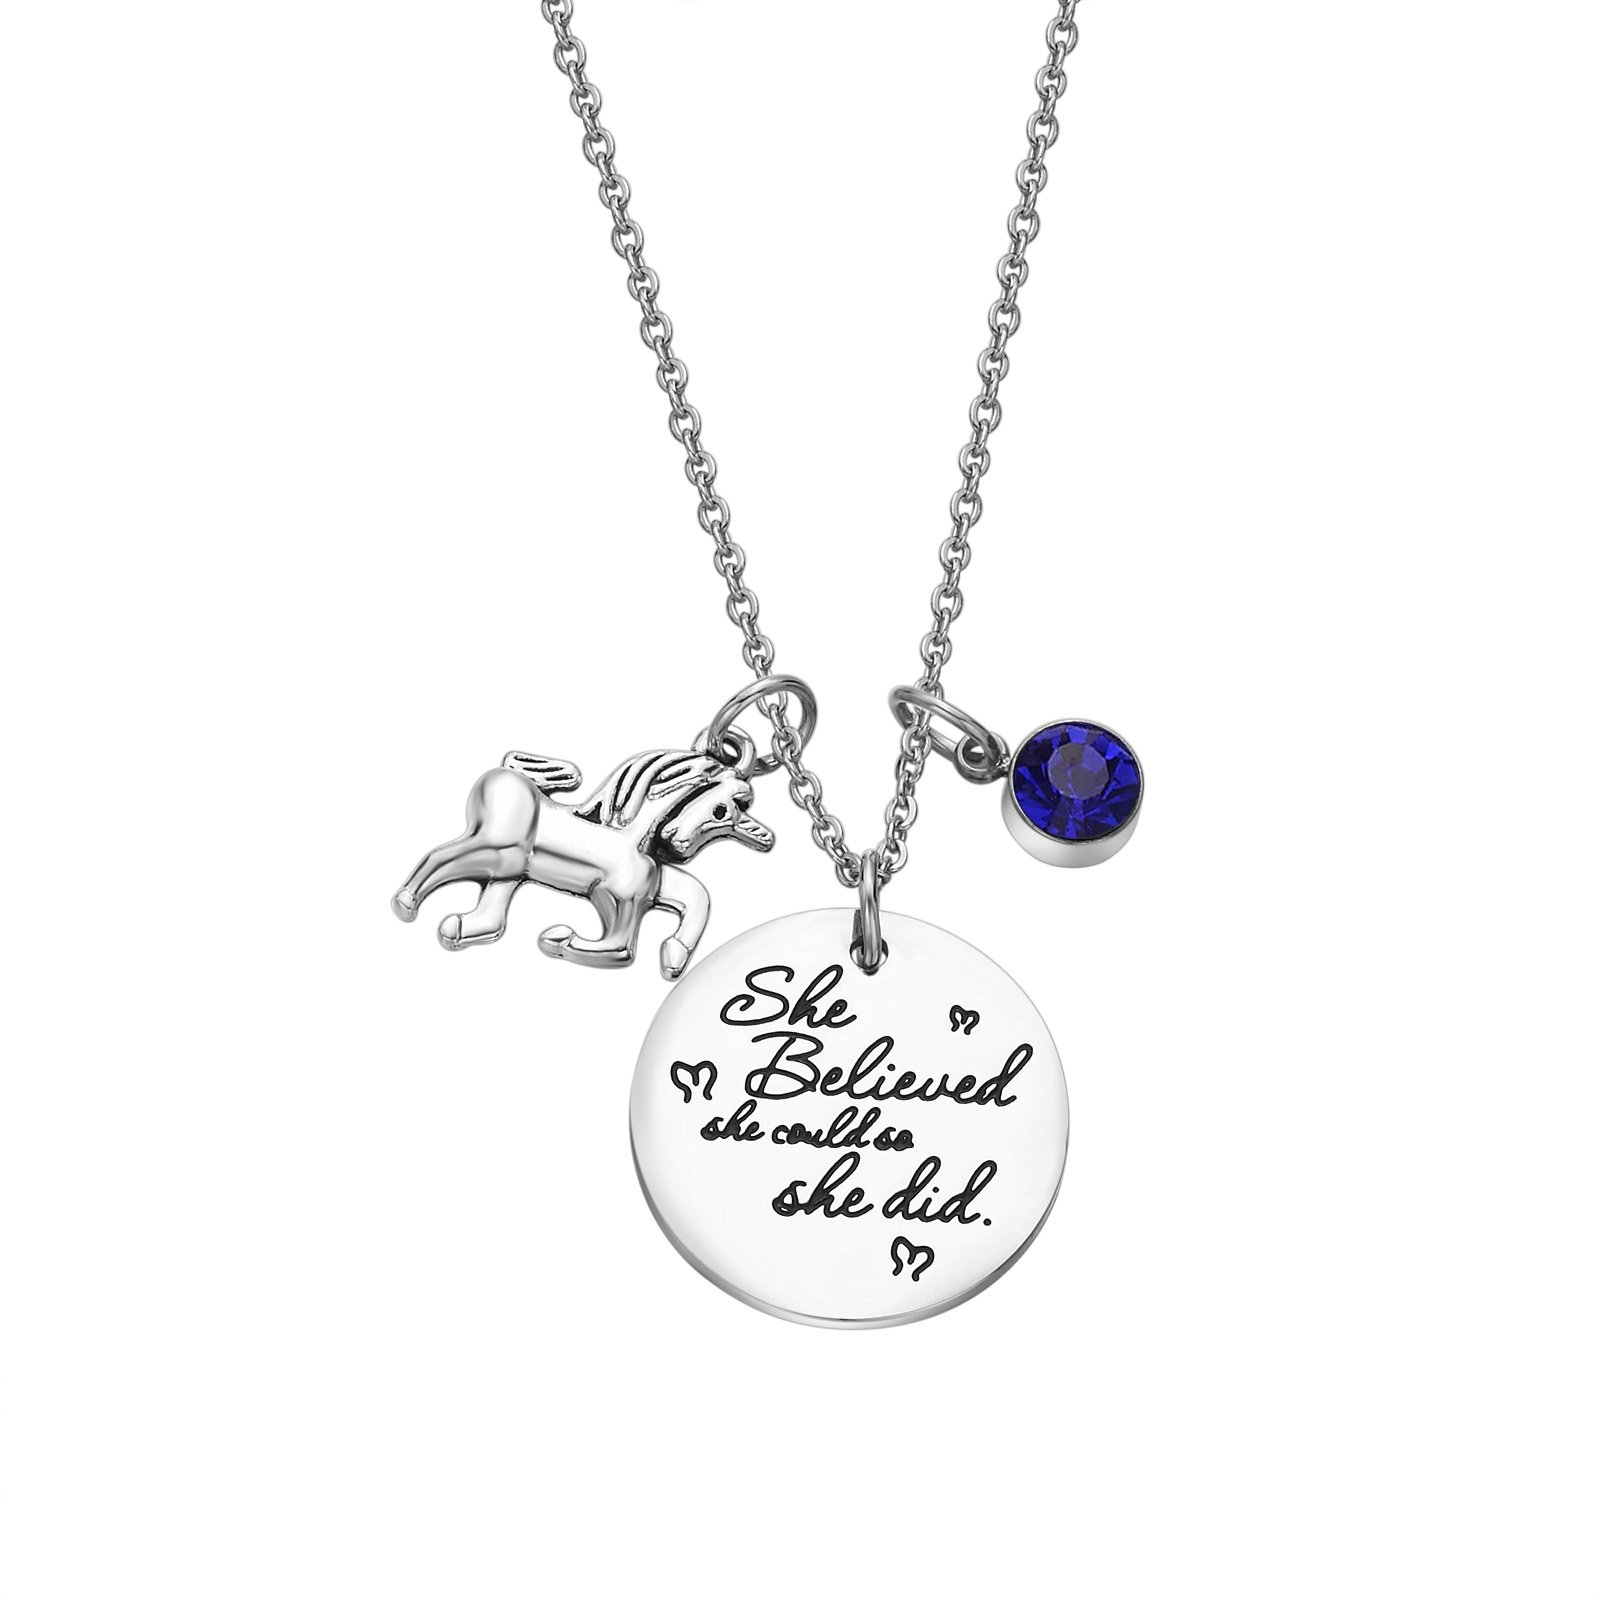 Fullrainbow 2018 Stainless Steel Inspirational Message Heart Necklace Pendant Charm Chain Necklace She Believed She Could So She Did (Sep)